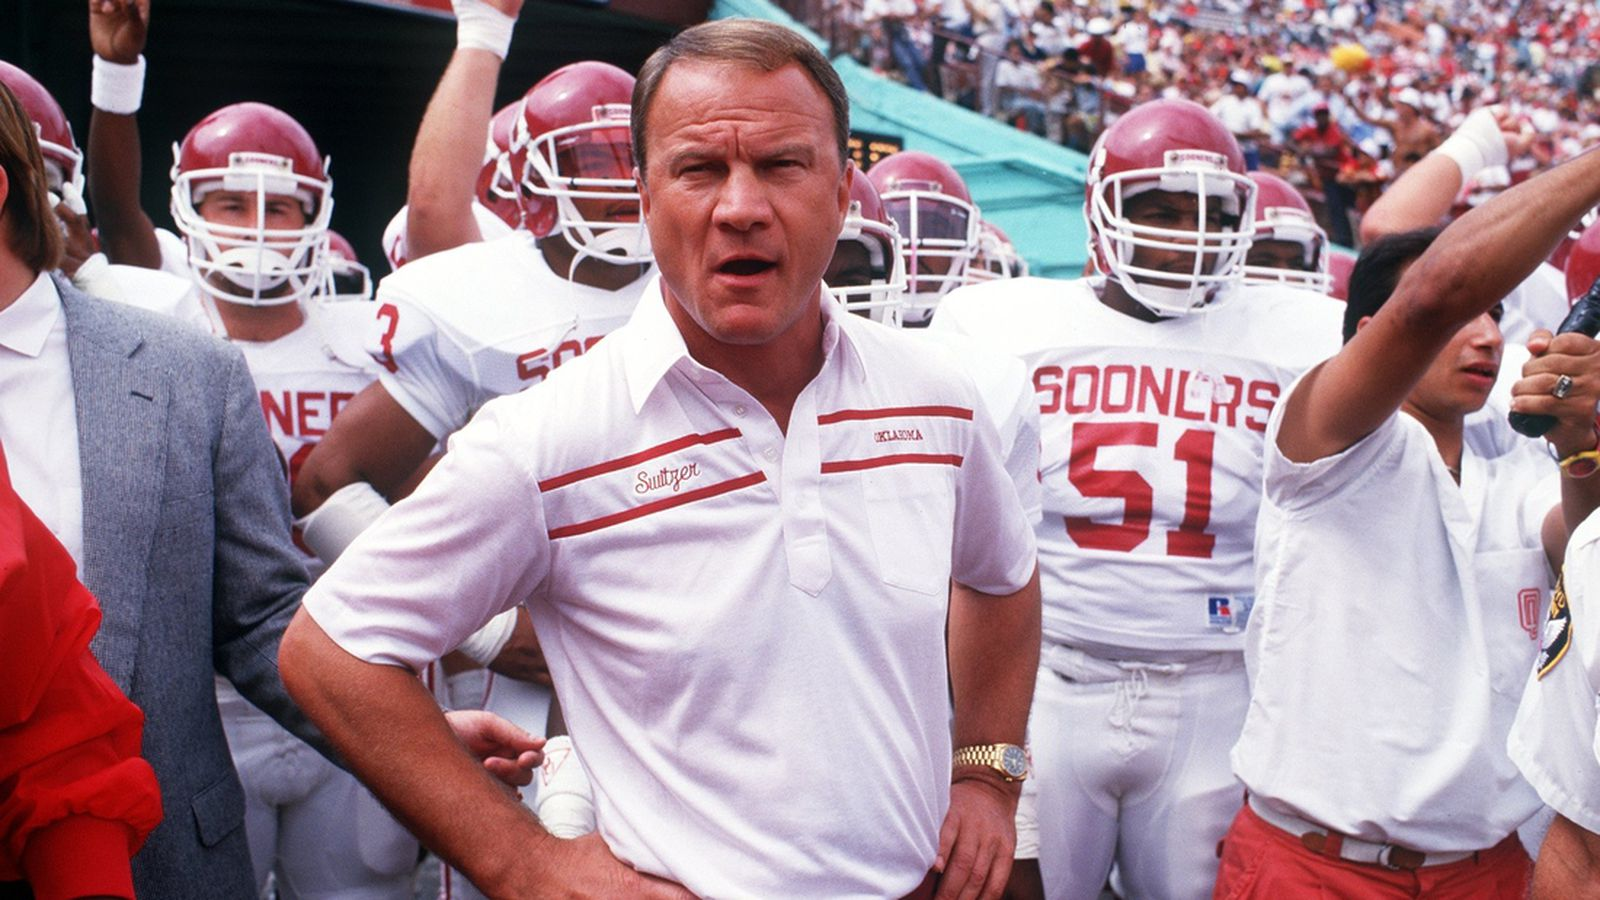 We Kicked Their Ass An Interview With Barry Switzer